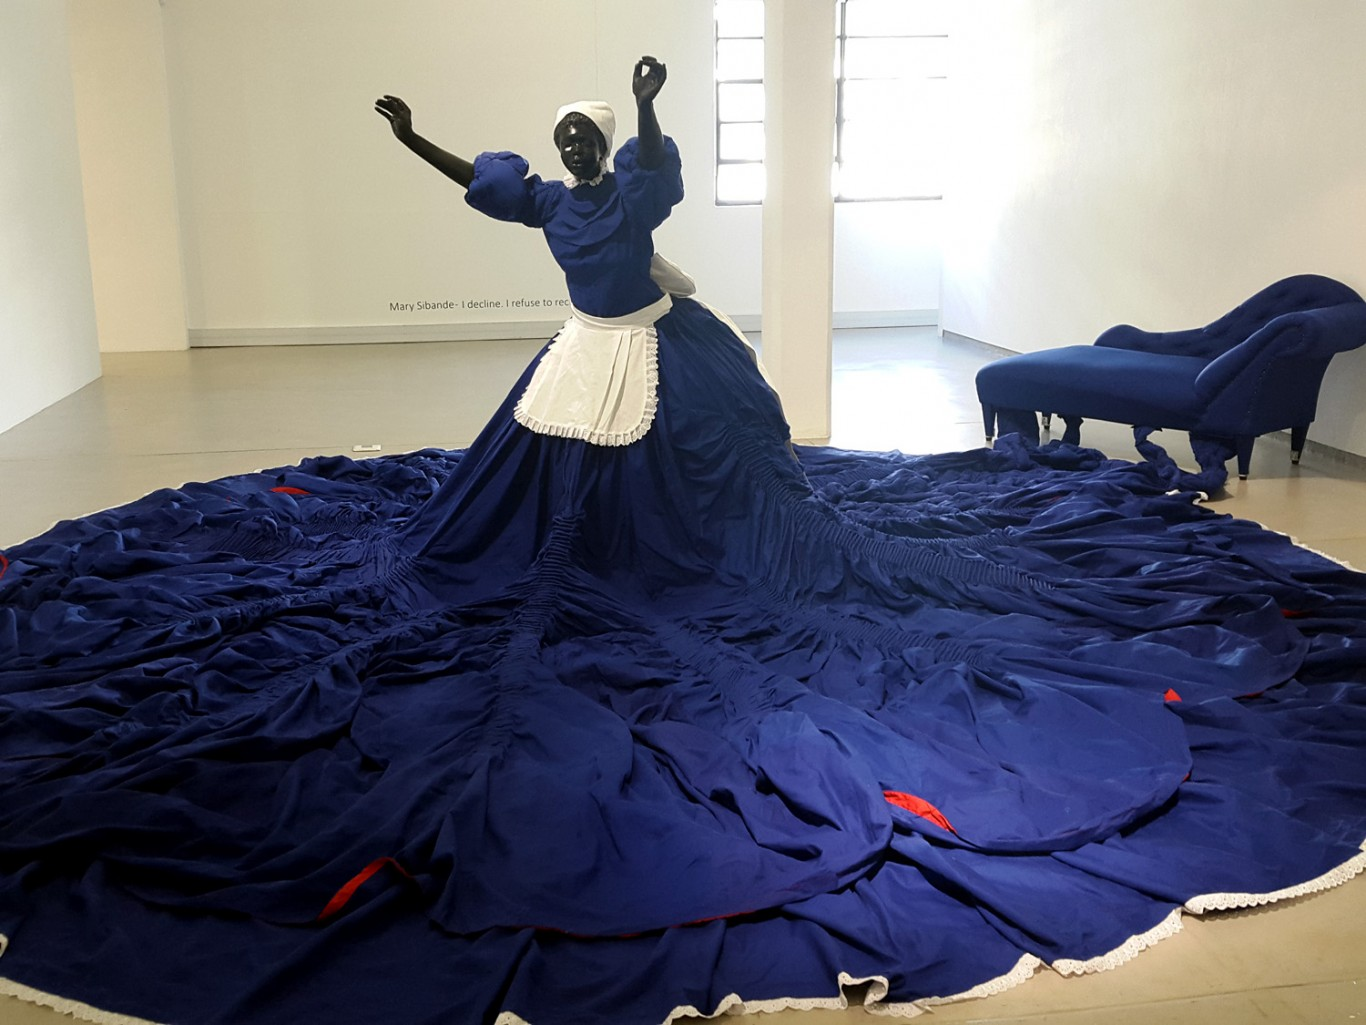 Mary Sibande at Gallery MOMO